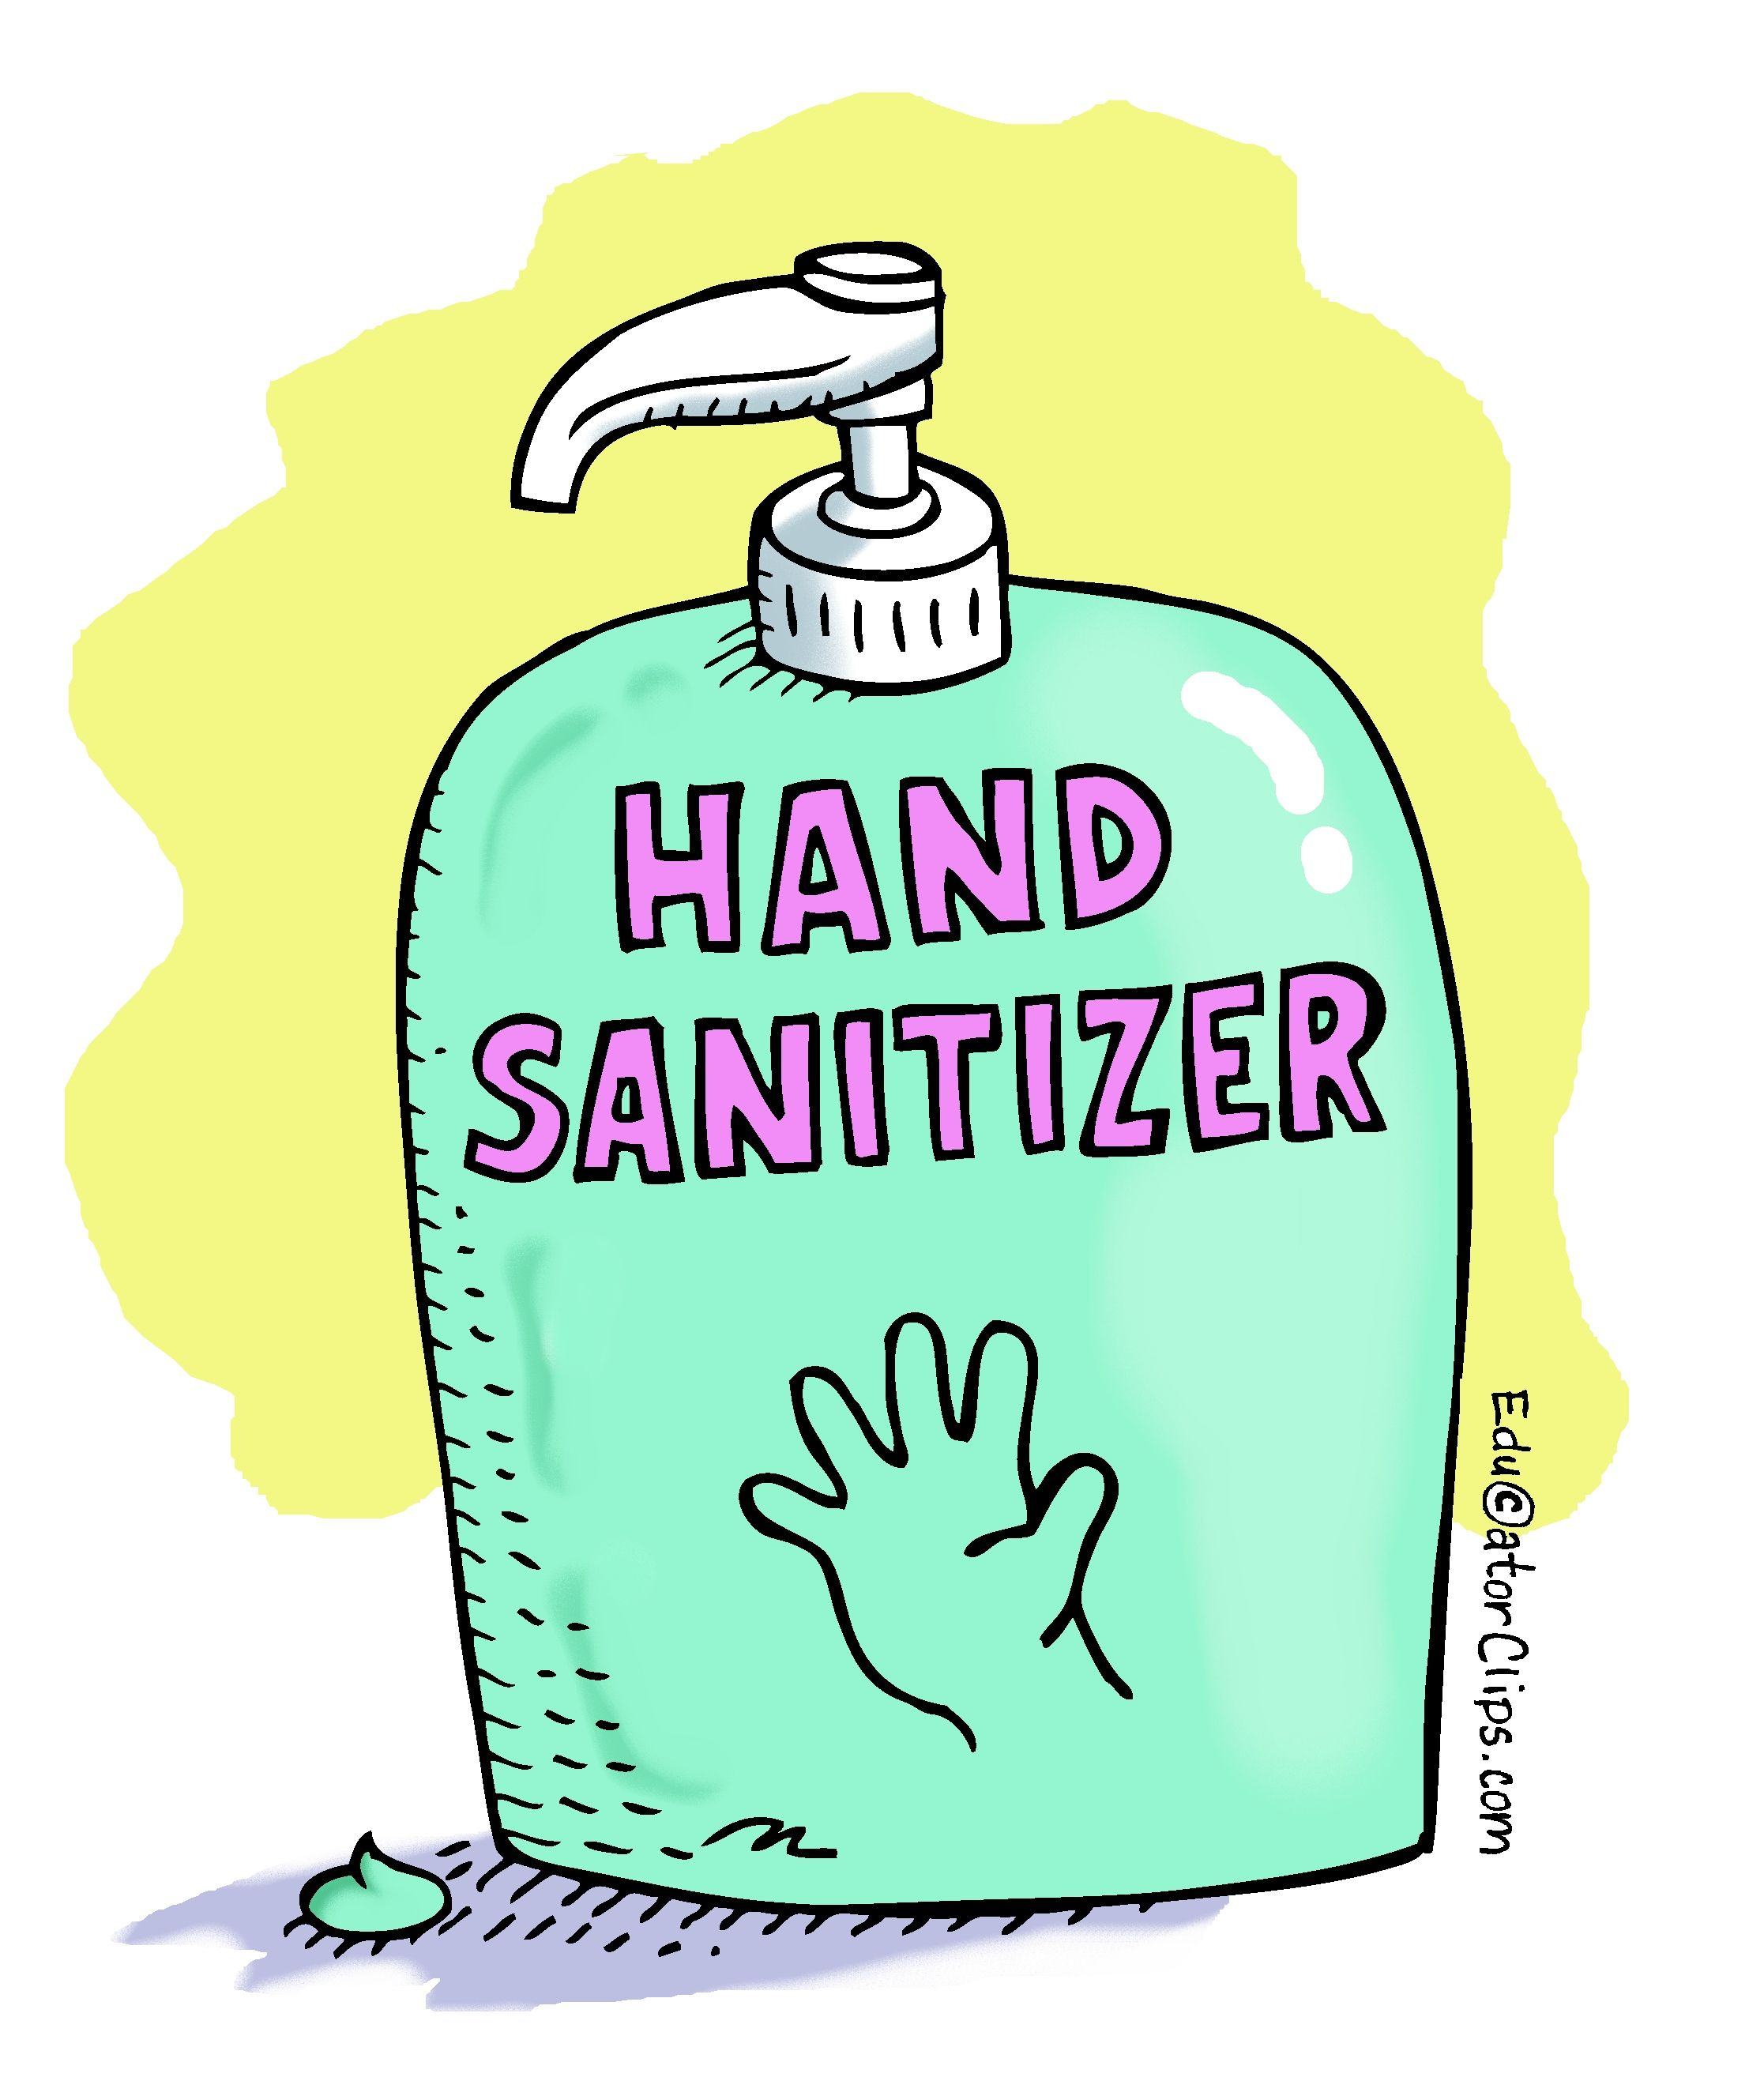 Hand Sanitizer Clip Art Handsanitizer Teacherclipart Hand